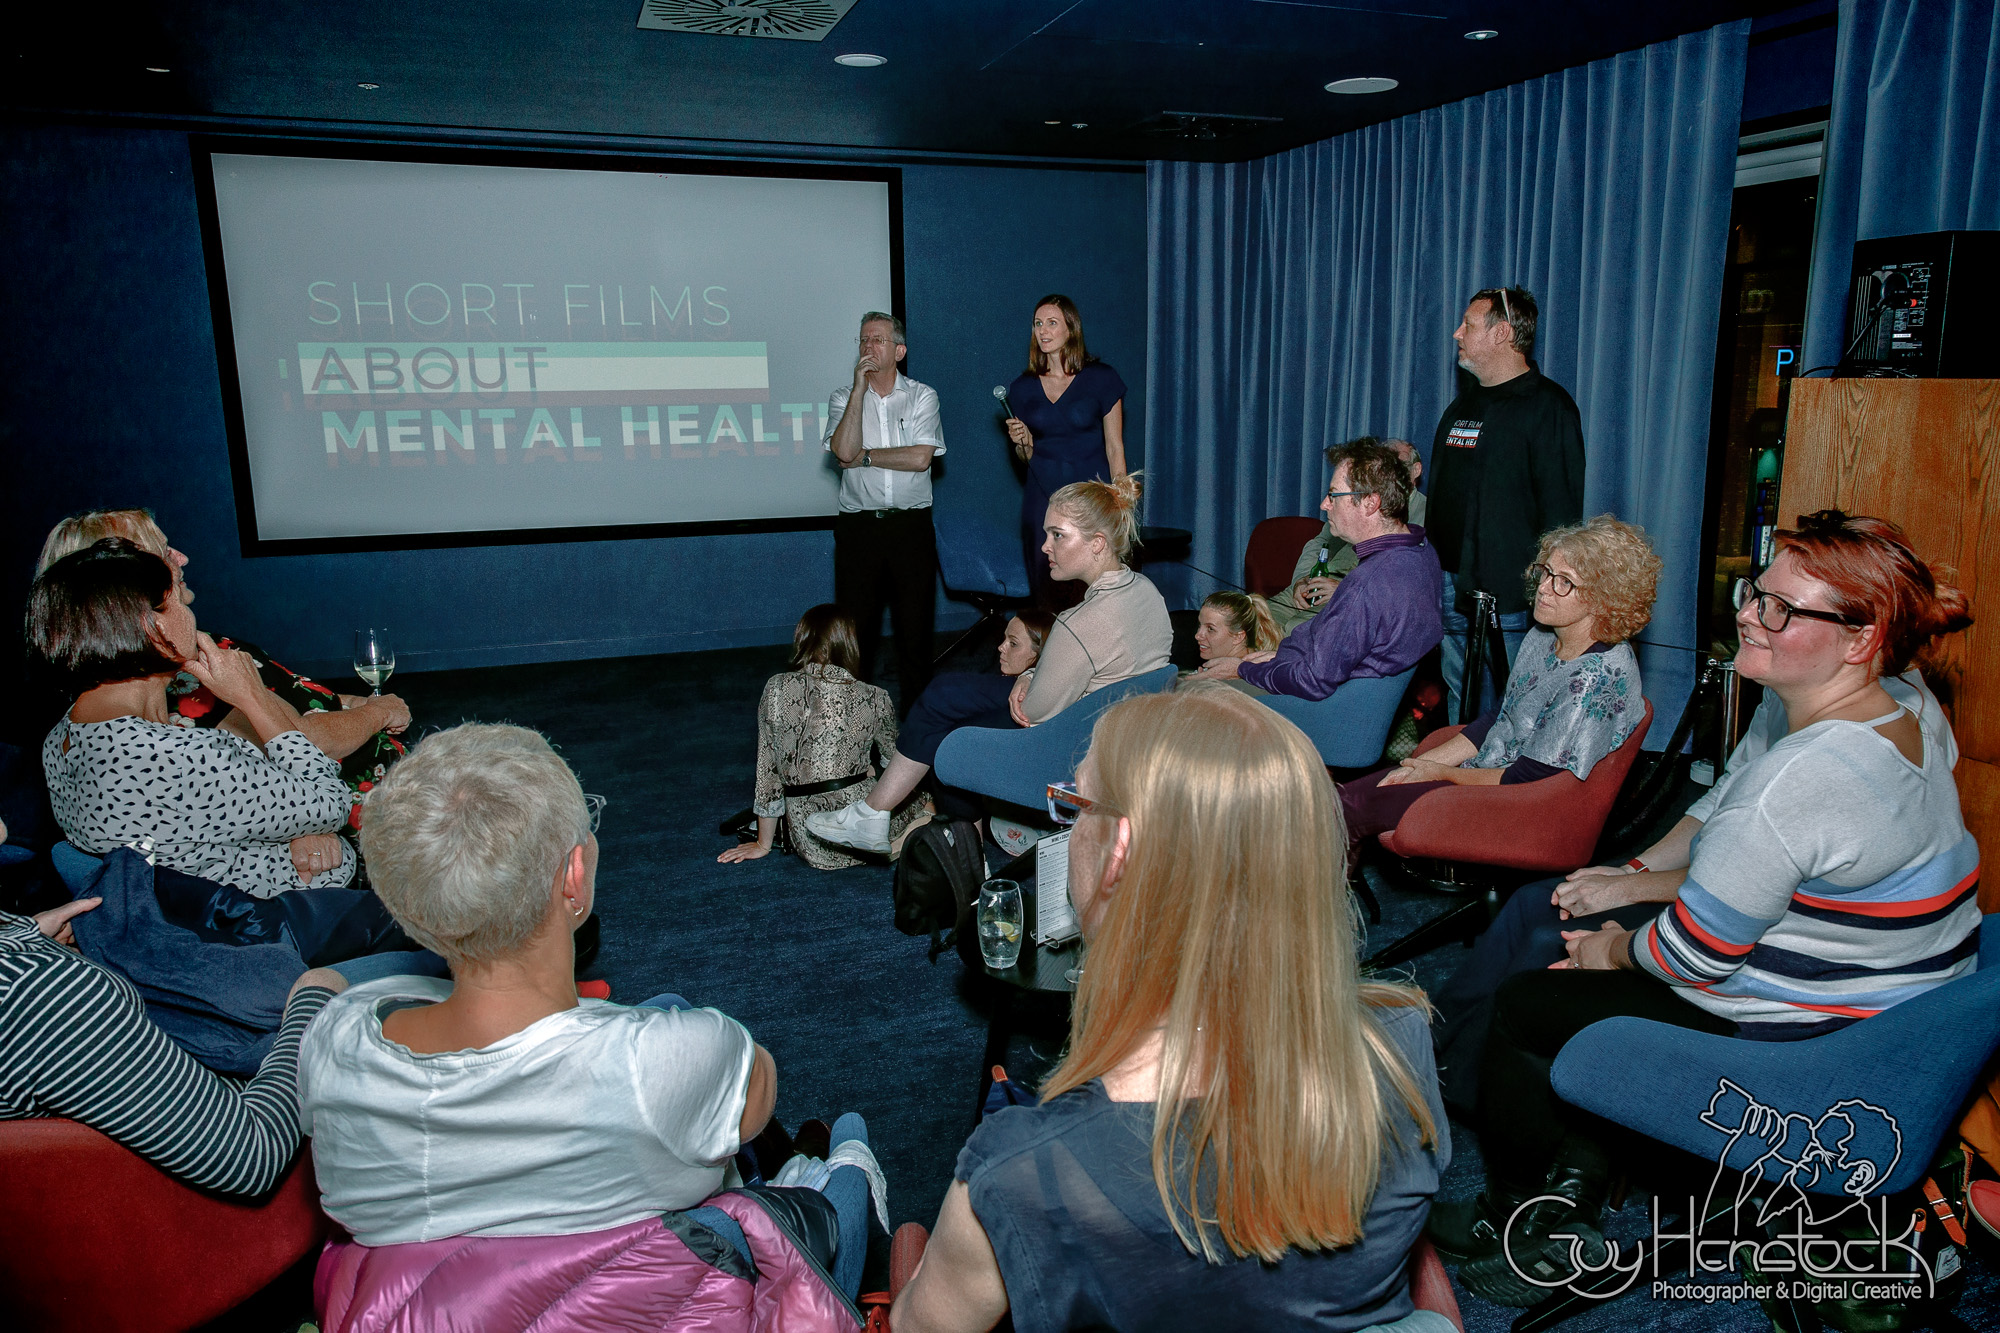 Mental Health Film Night - Short Films About Mental Health